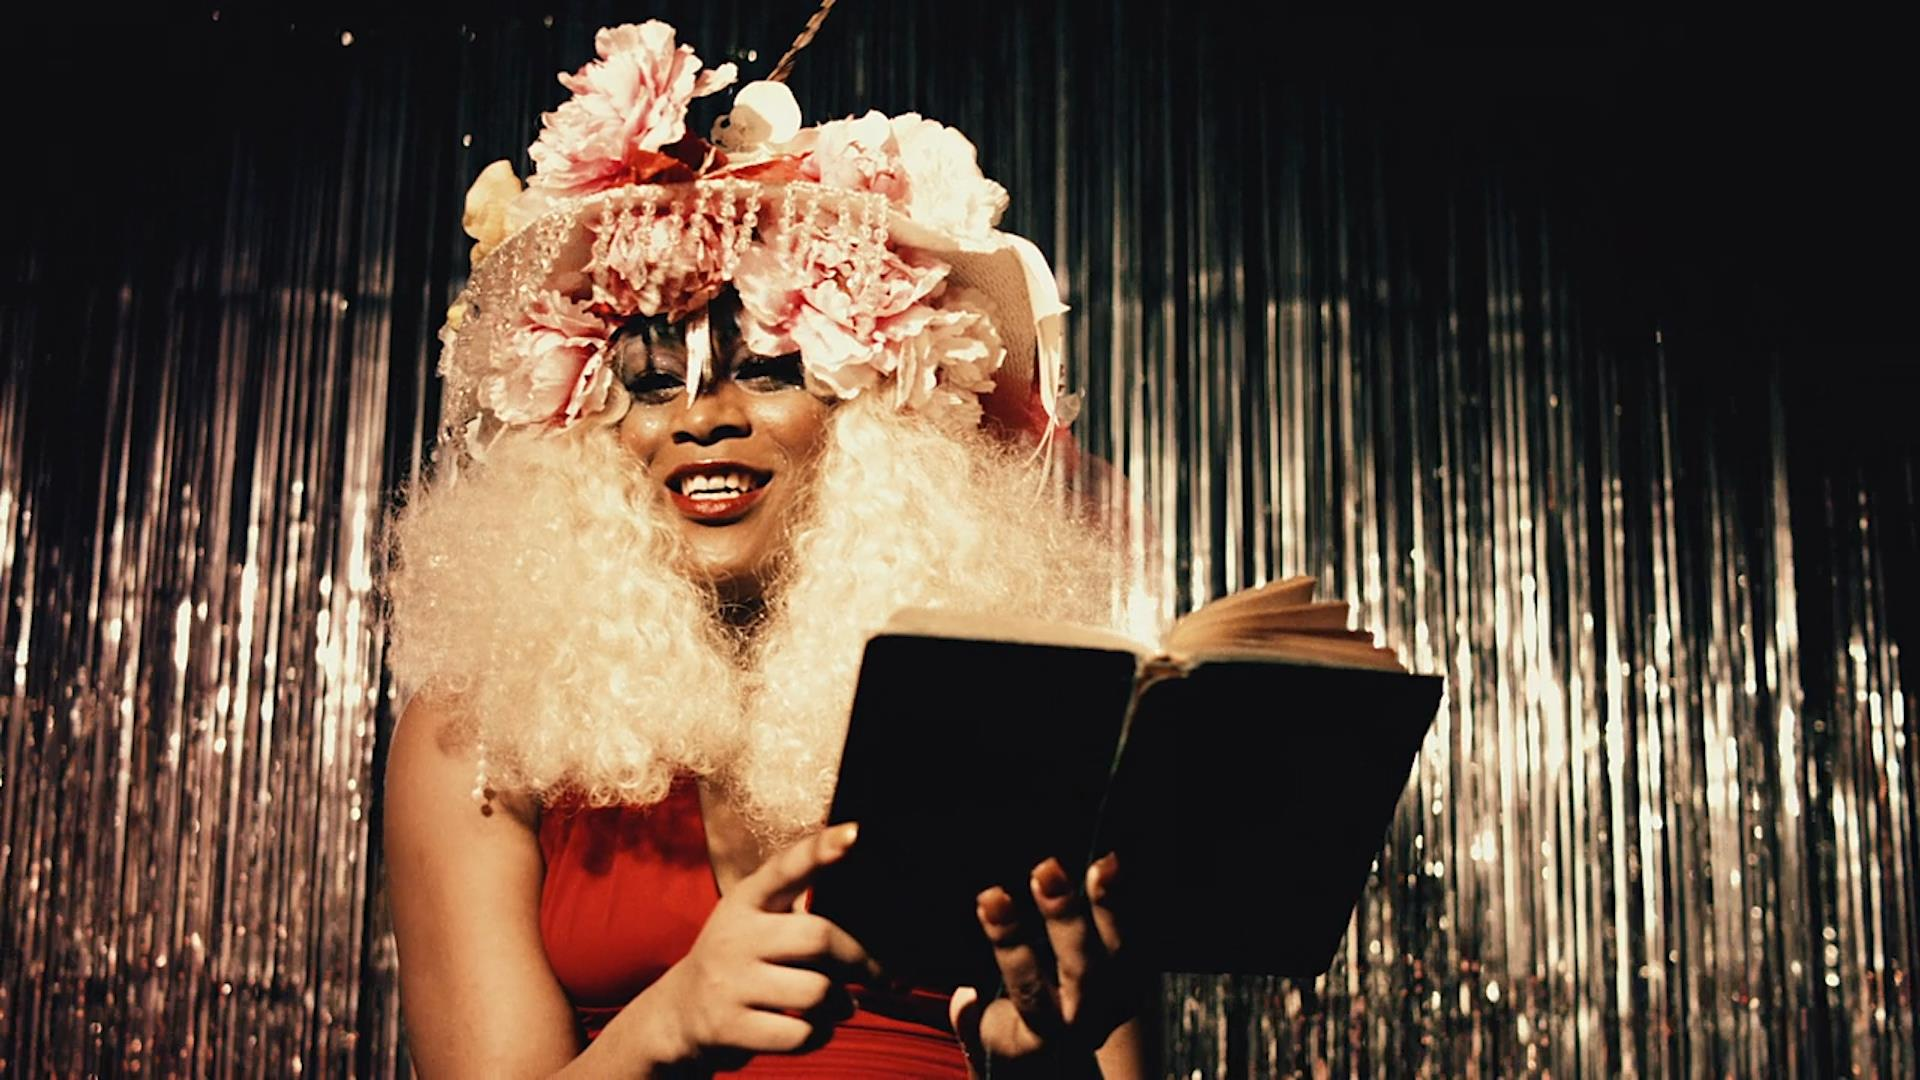 Image Description: Marsha P Johnson (Mya Taylor) performs a poem on stage